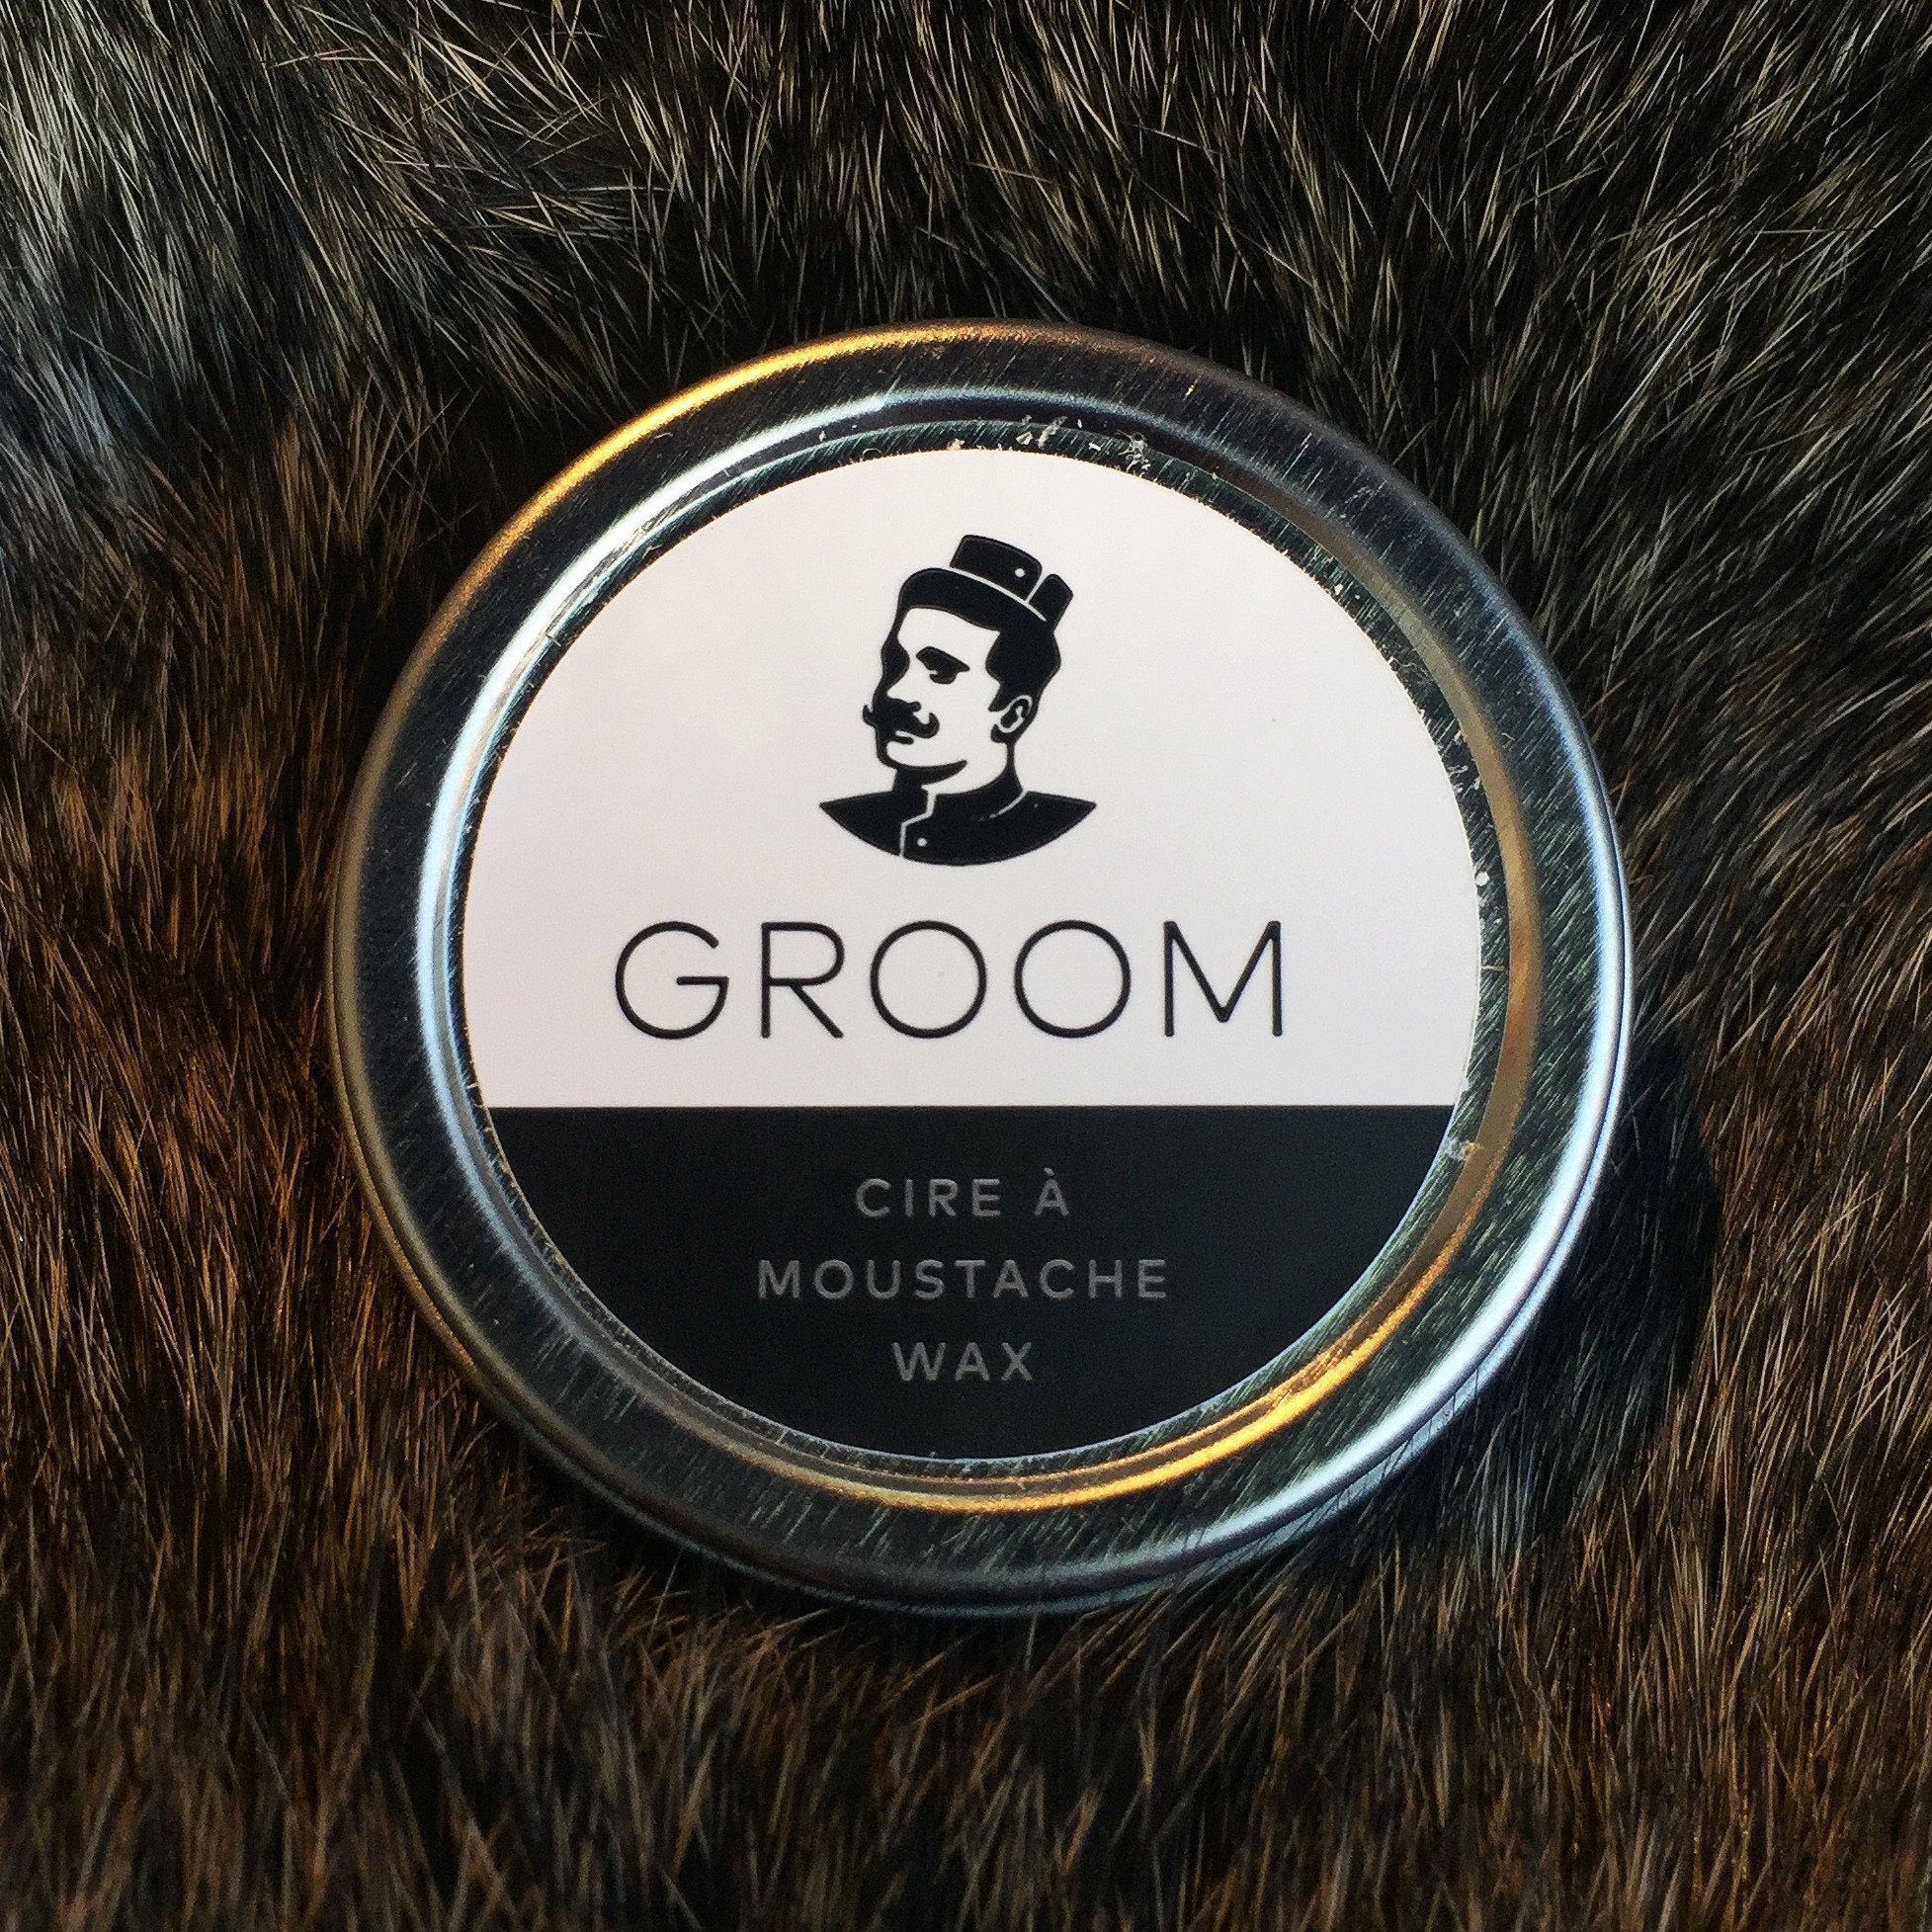 Groom Moustache Wax 15ml